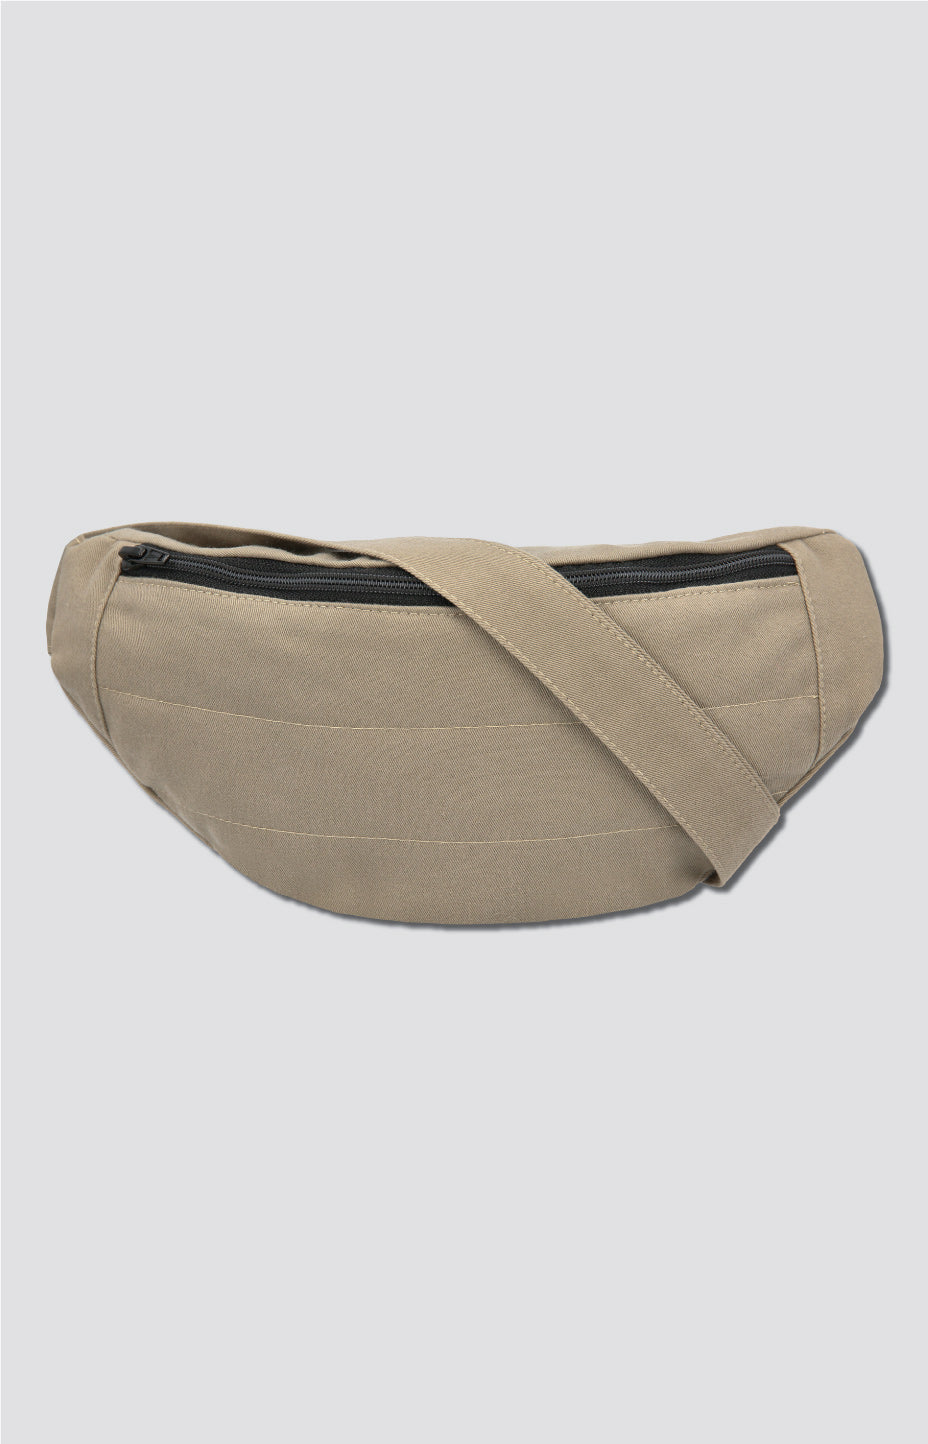 Ring belt bag khaki - Accessories - TAUKO - TAUKODESIGN